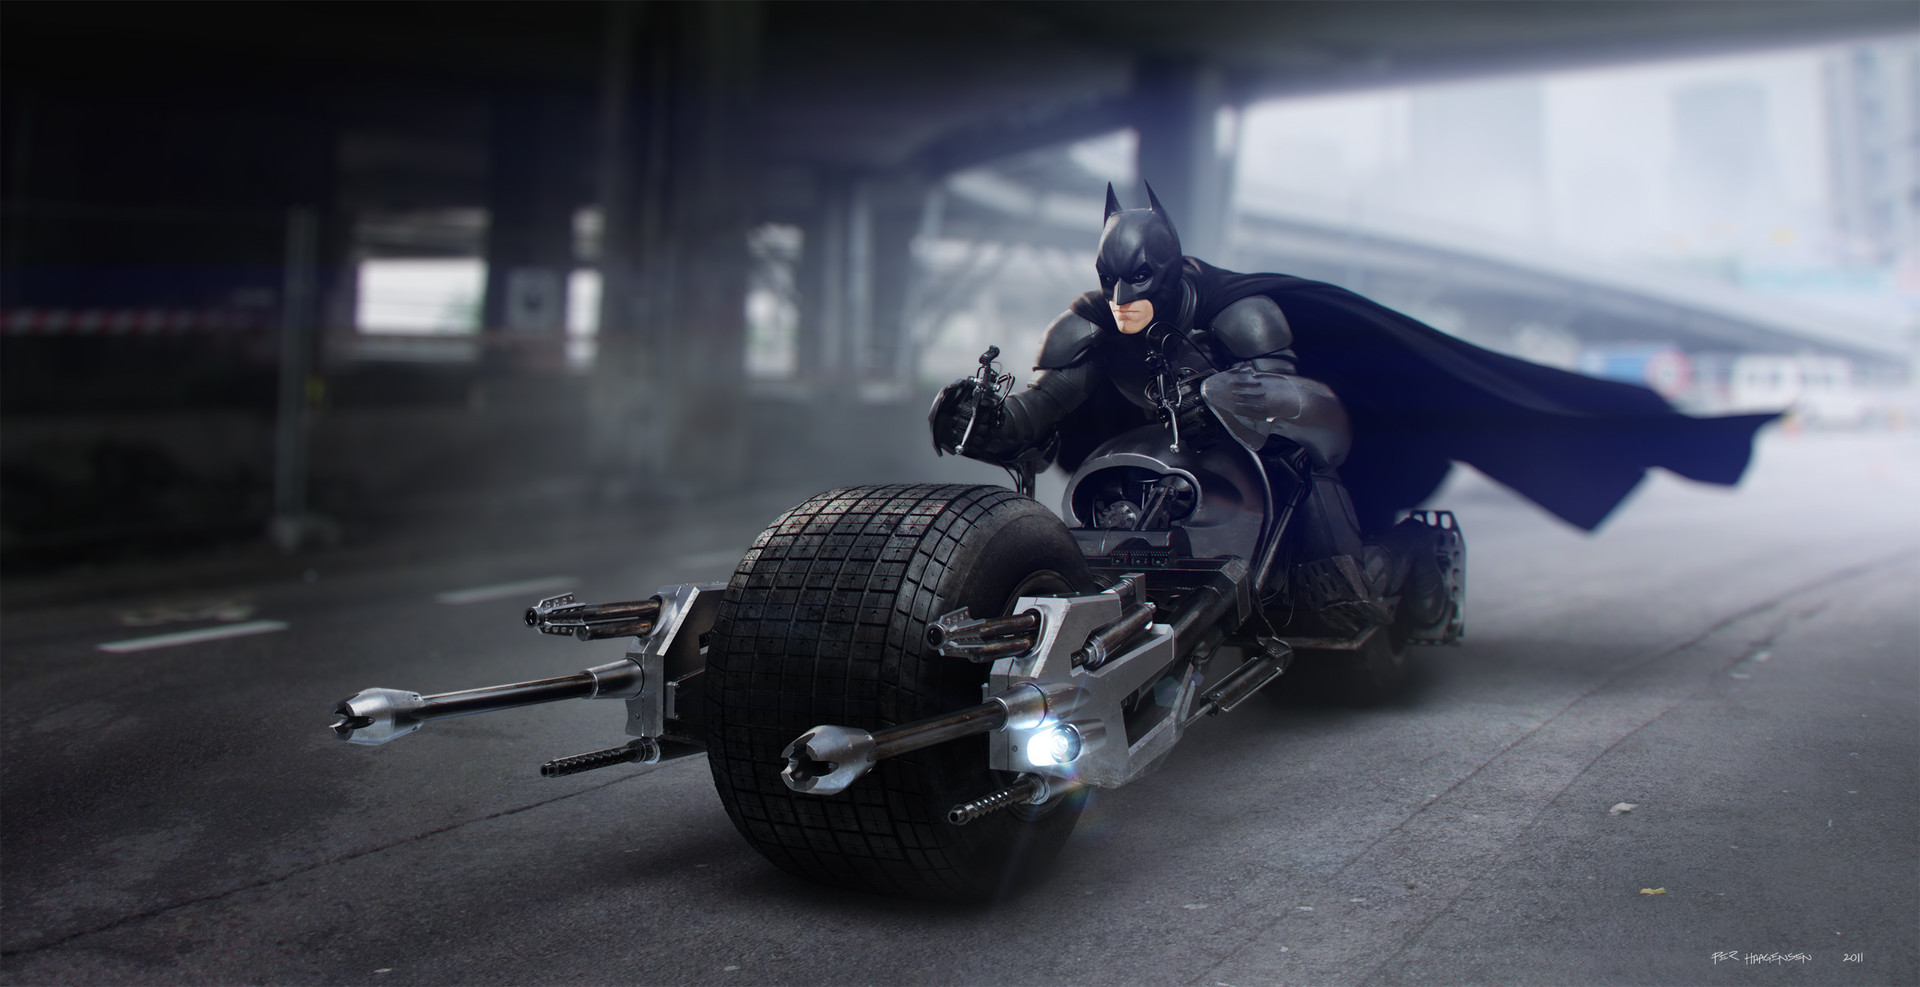 Moto badass The dark knight bat-pod